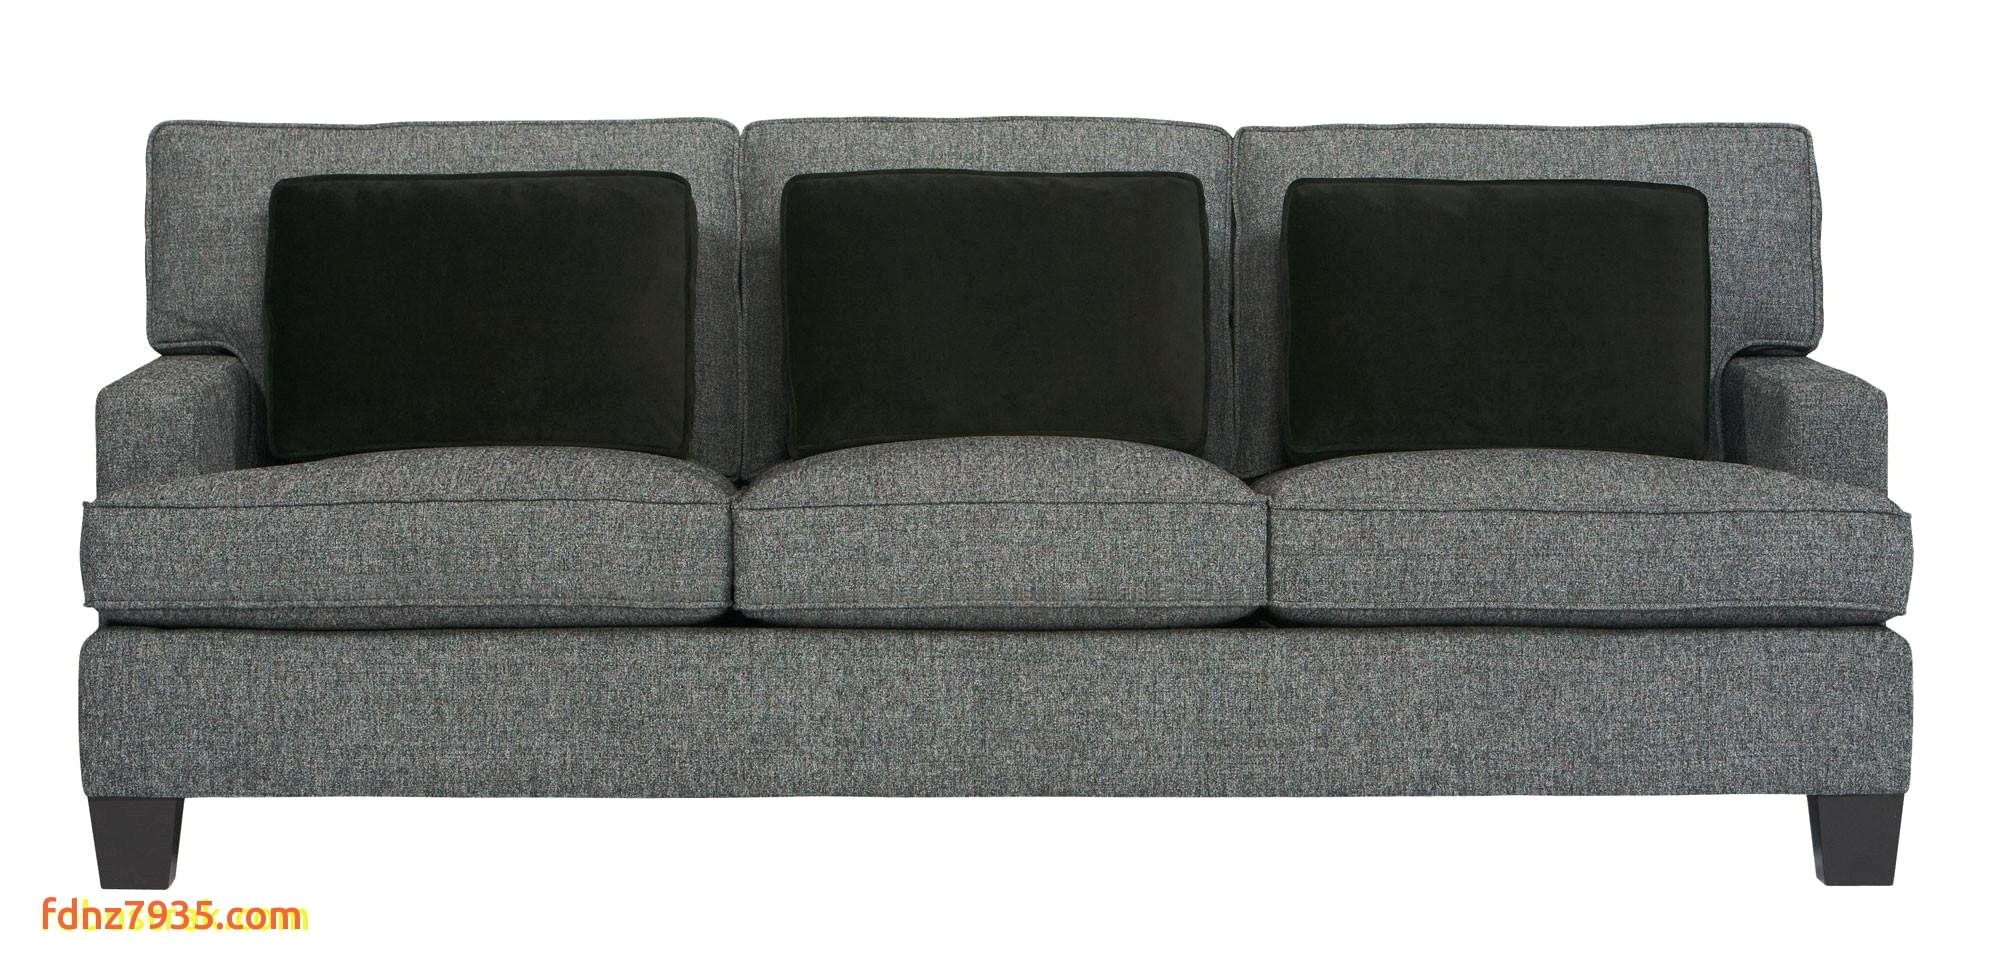 jcpenney sofa bed beautiful furniture sleeper loveseat new wicker outdoor sofa 0d patio jcpenney sofa